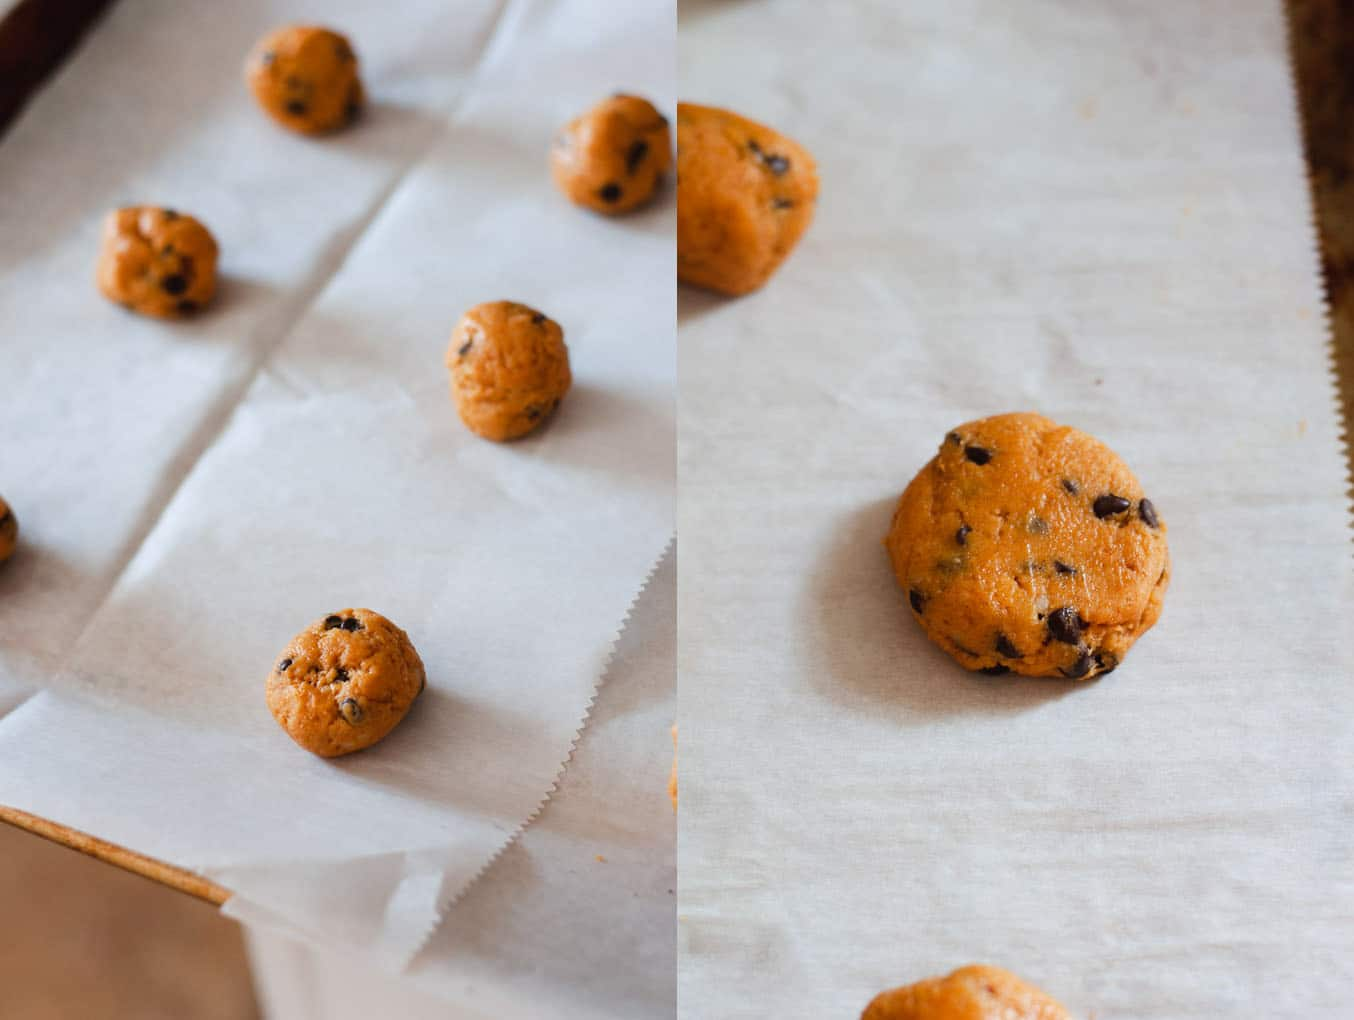 Left image shows balls of orange pumpkin cookie dough on parchment paper. Right image shows flattened cookie.